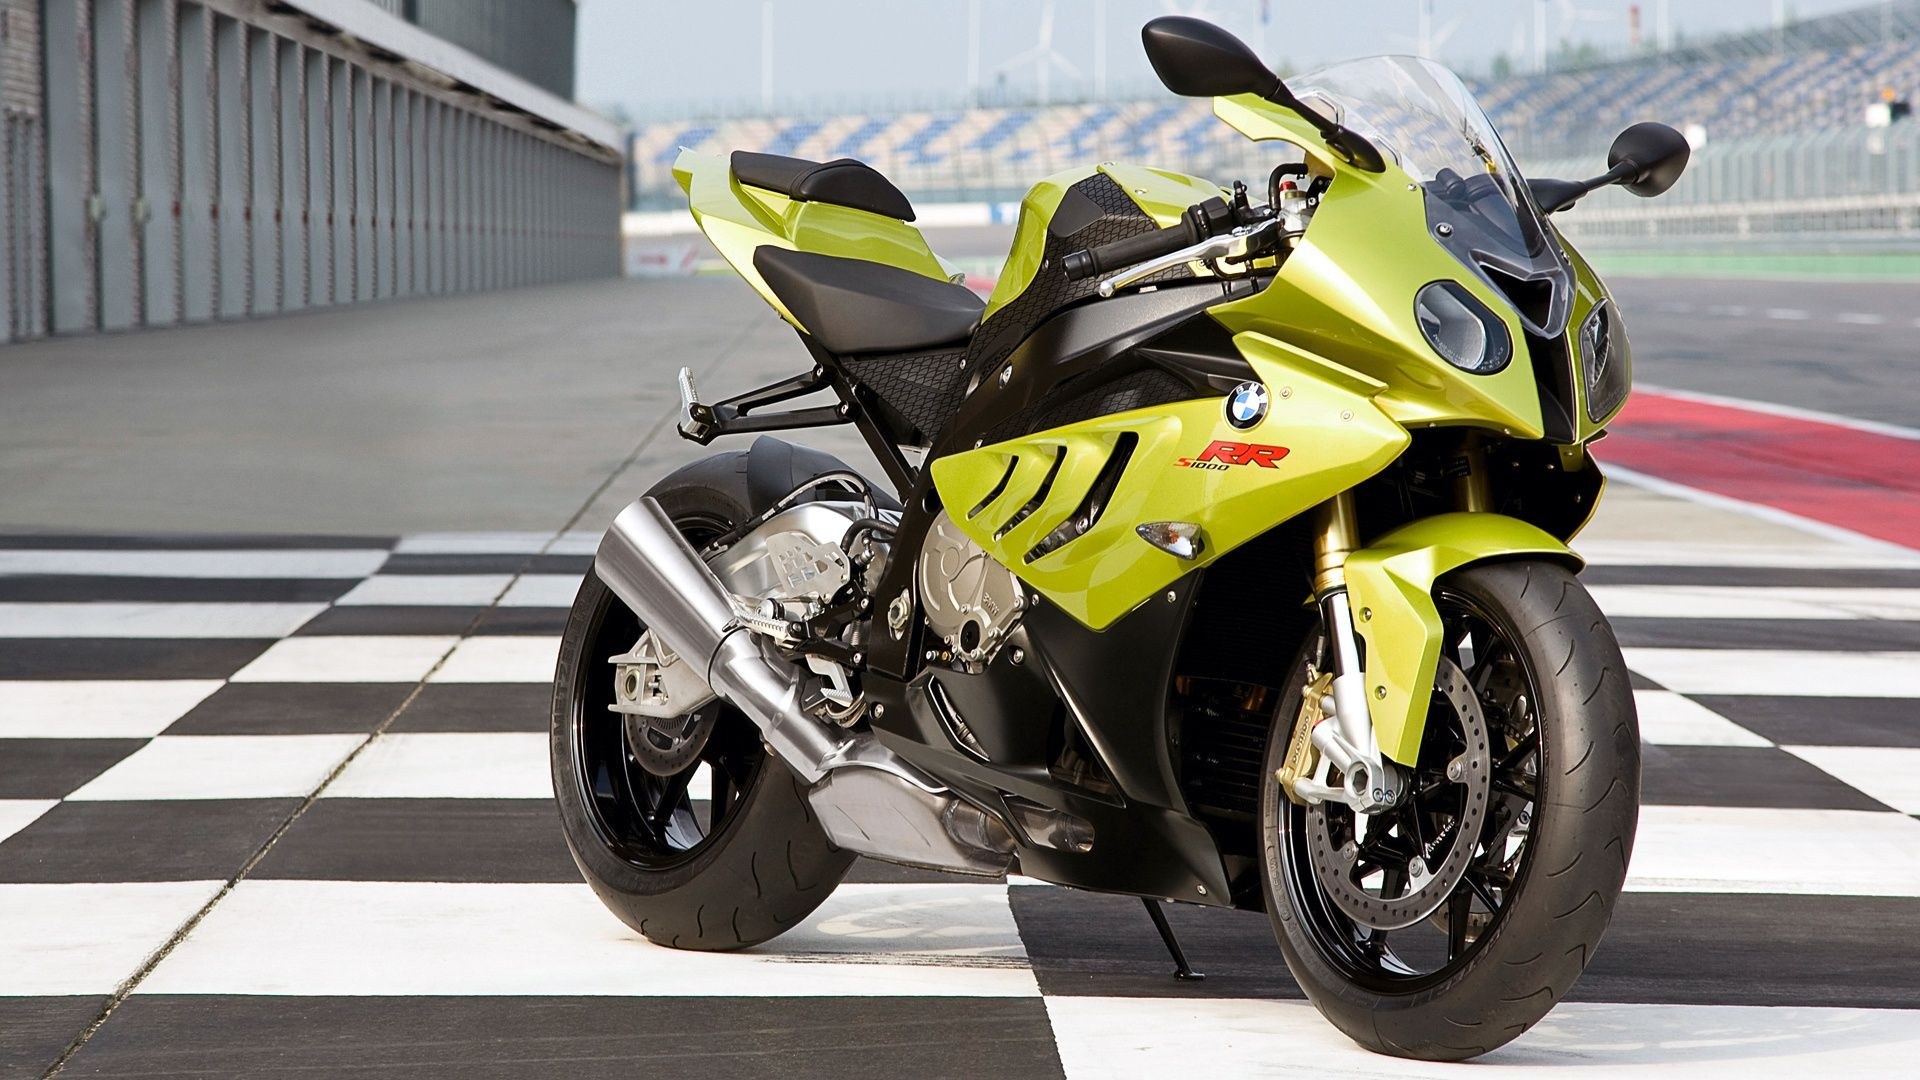 Bmw Bikes Dubai Bmw Bikes Highest Price Bmw S1000rr Bmw